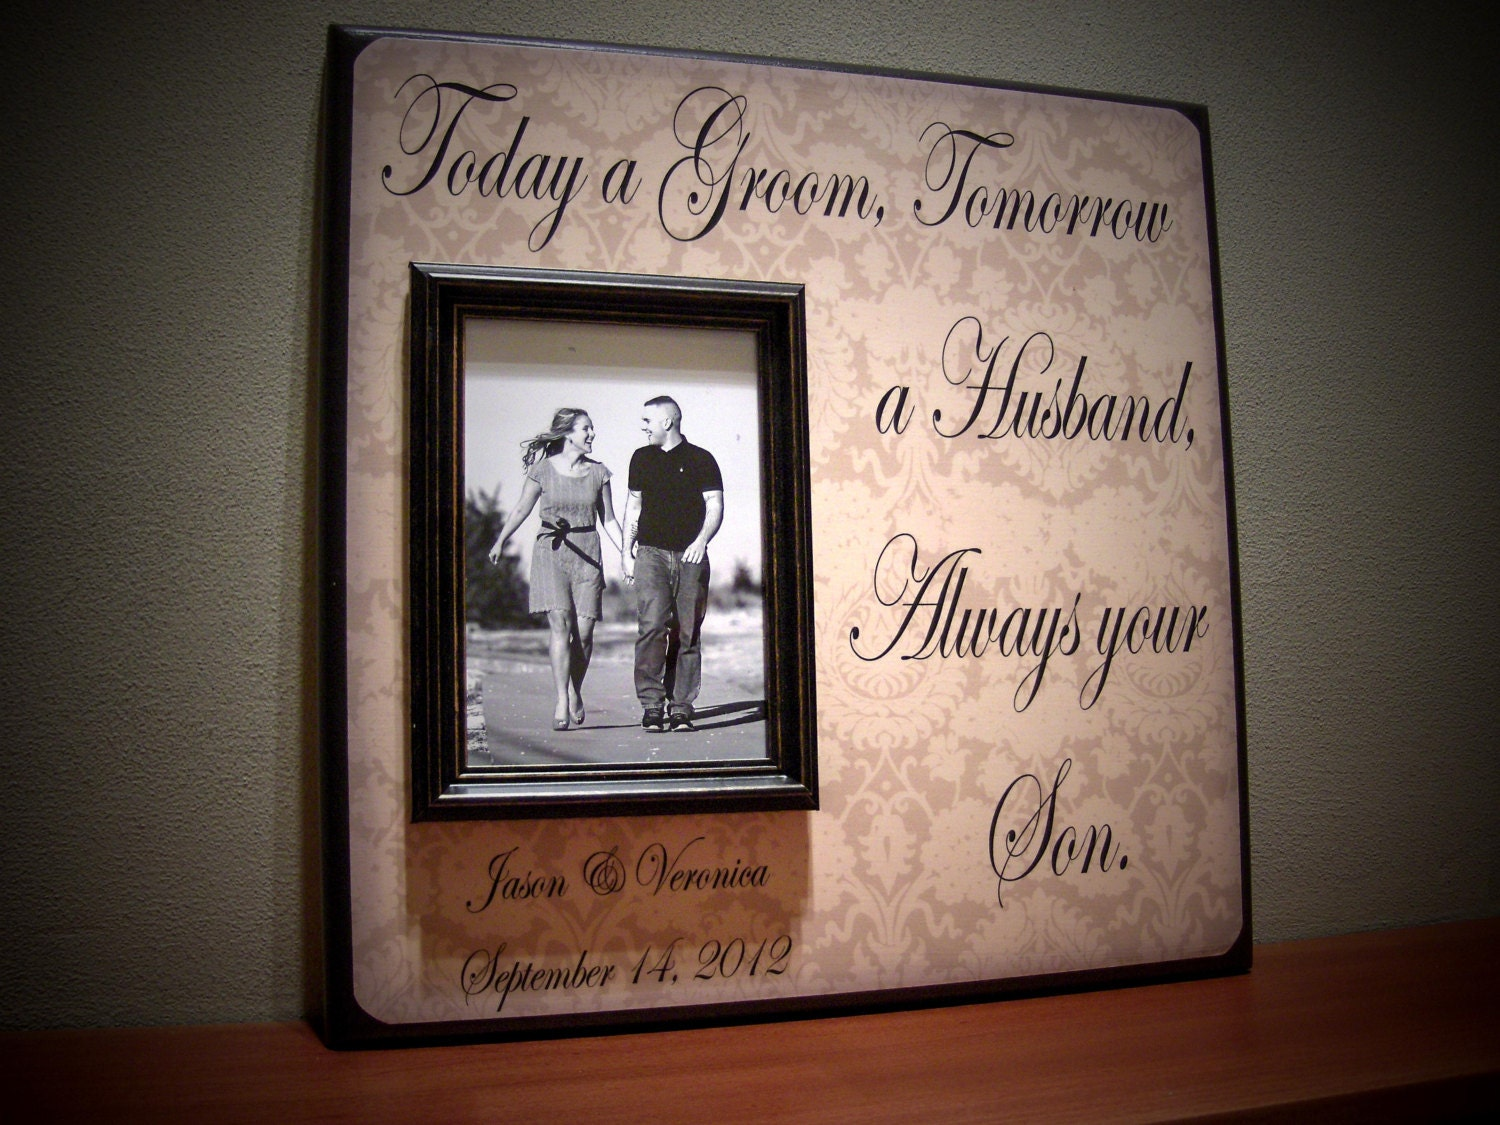 Wedding Gifts For Parents Of The Groom : Mother of the Groom Gift Parents of the Groom by YourPictureStory